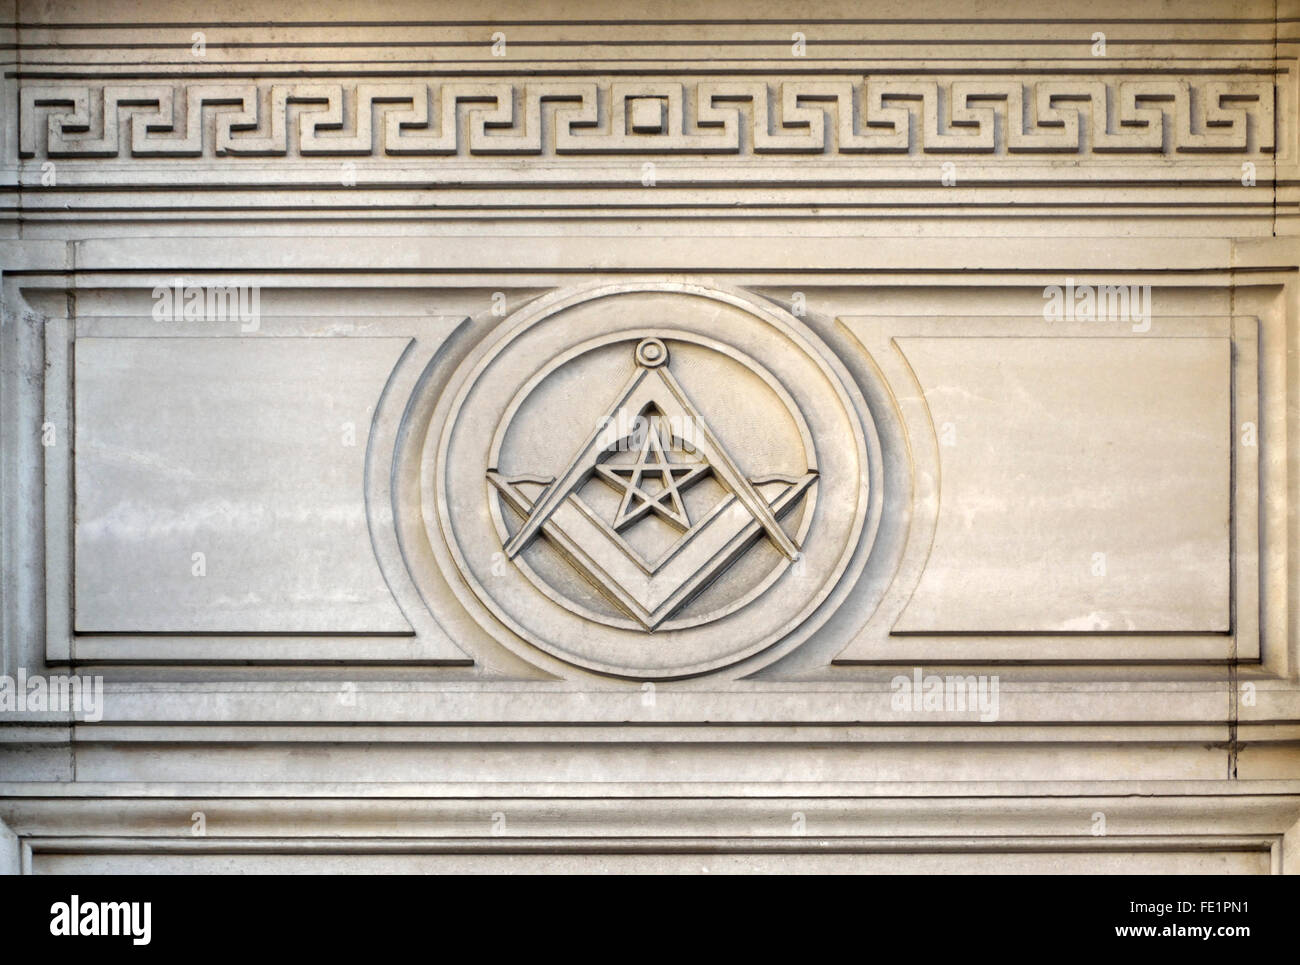 London, England, UK. Freemasons' Hall, Great Queen Street. Detail showing the Masonic Square - The Square and - Stock Image